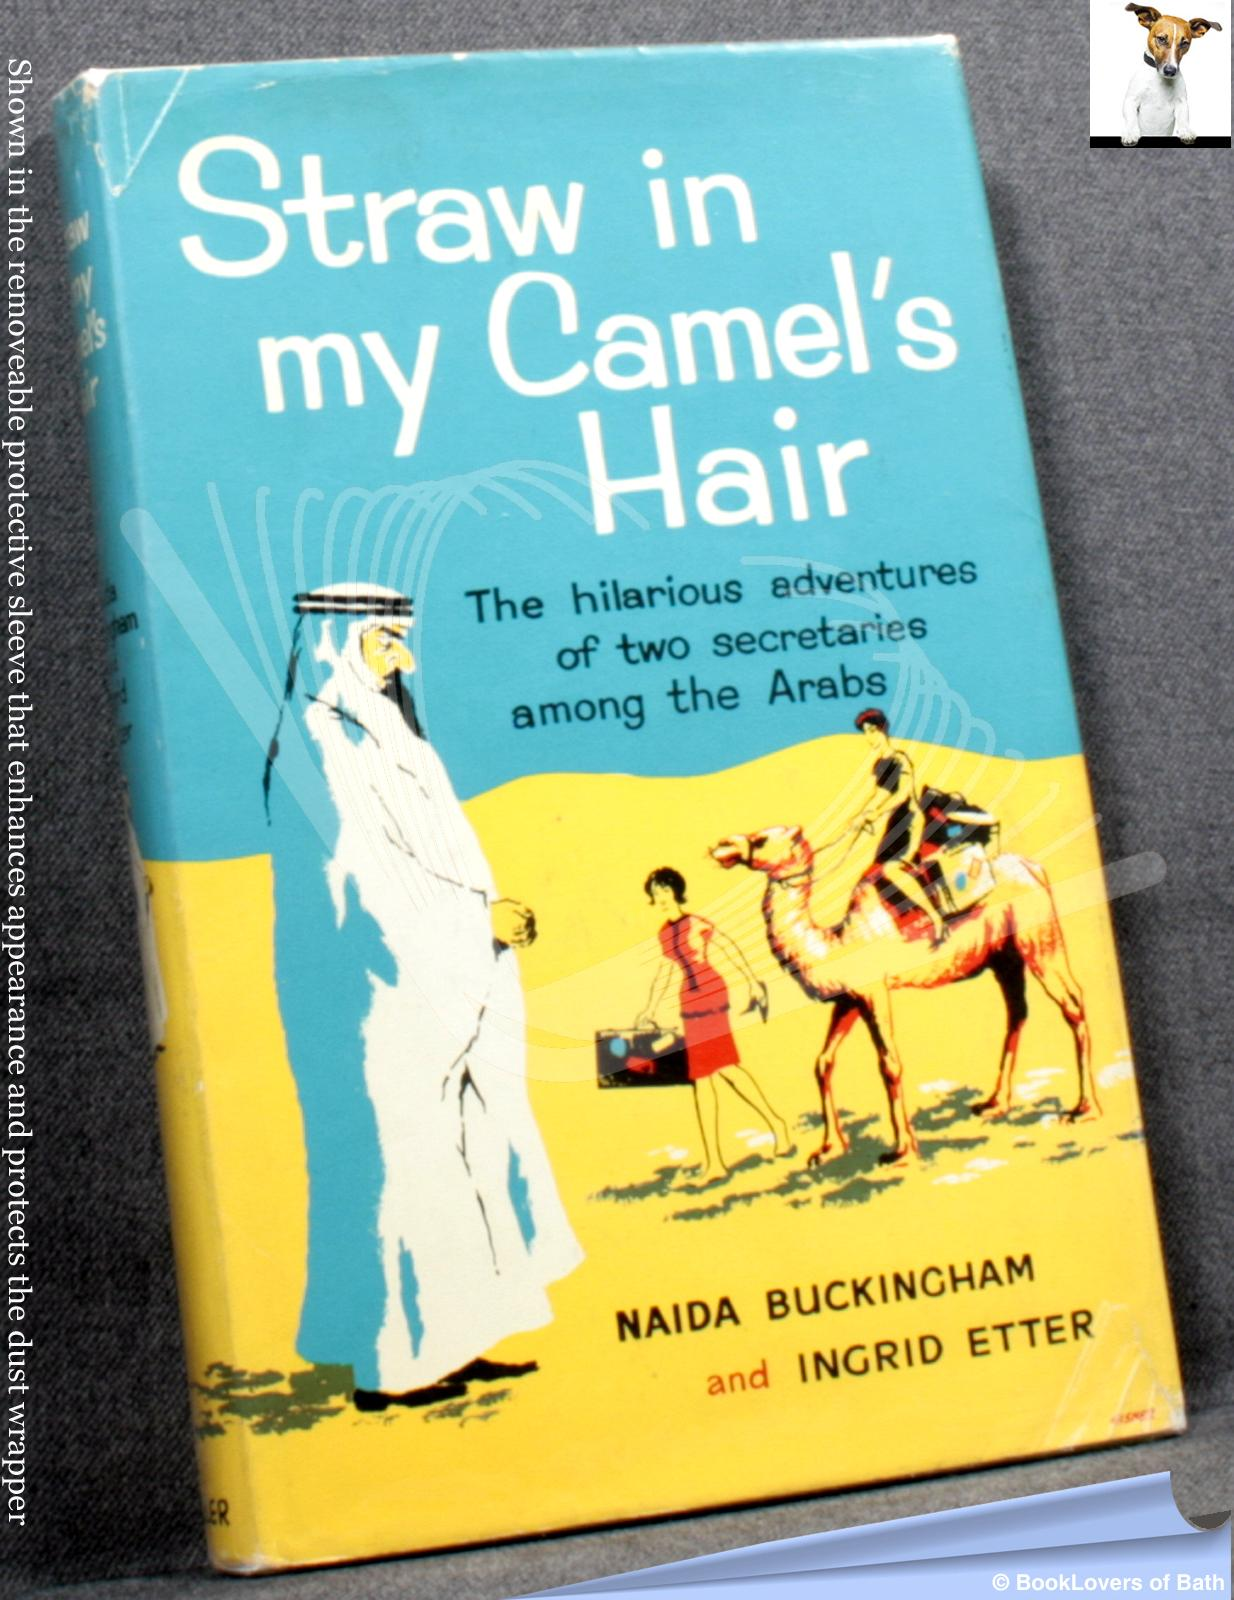 Straw in my Camel's Hair - Naida Buckingham; Ingrid Etter